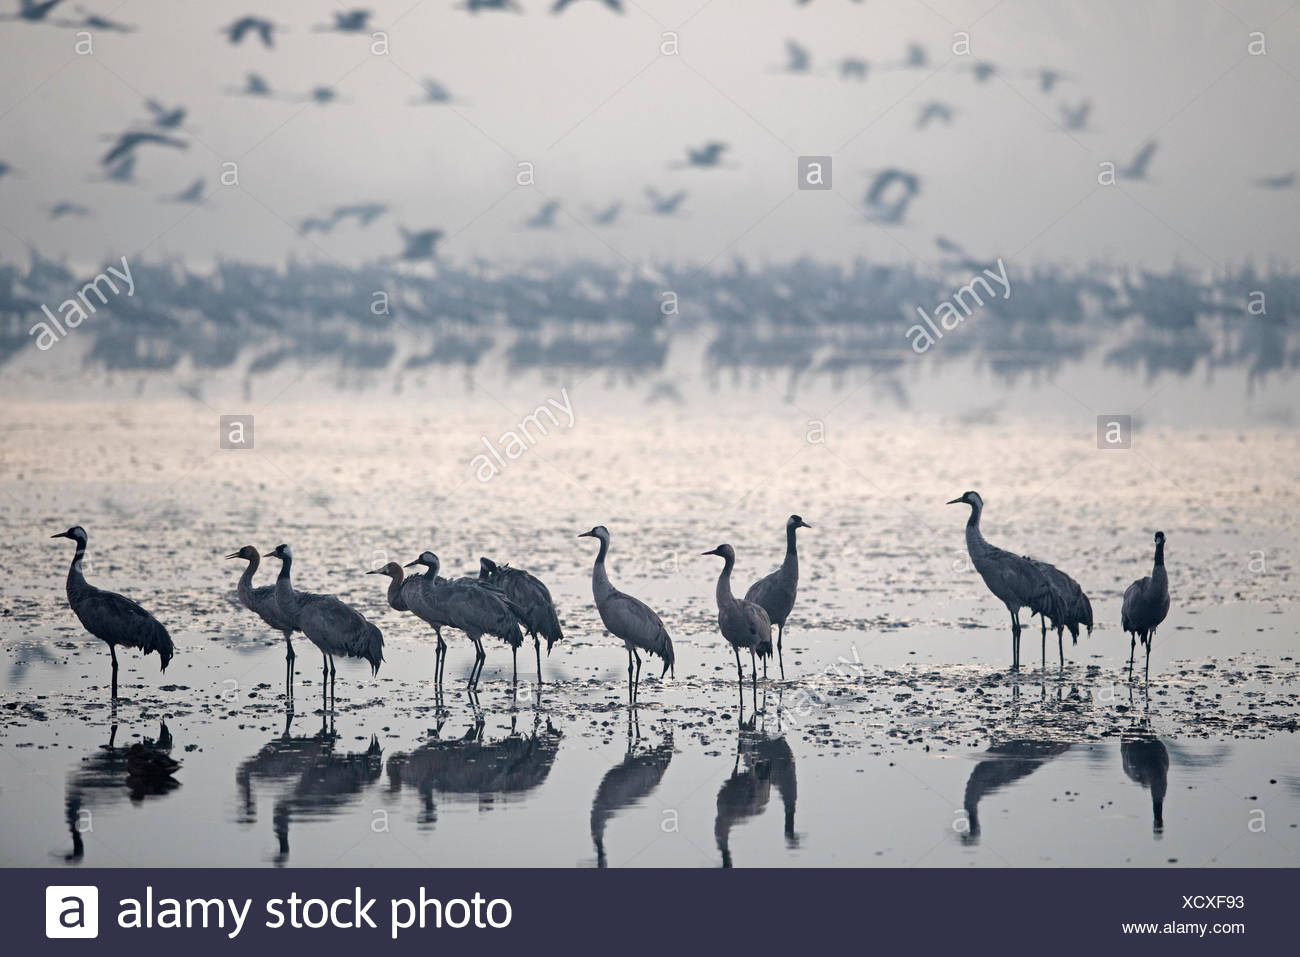 Common Cranes, at overnight roost at dawn, Grus grus, wintering at  the Hula Lake Park, known in Hebrew as Agamon HaHula in the Stock Photo